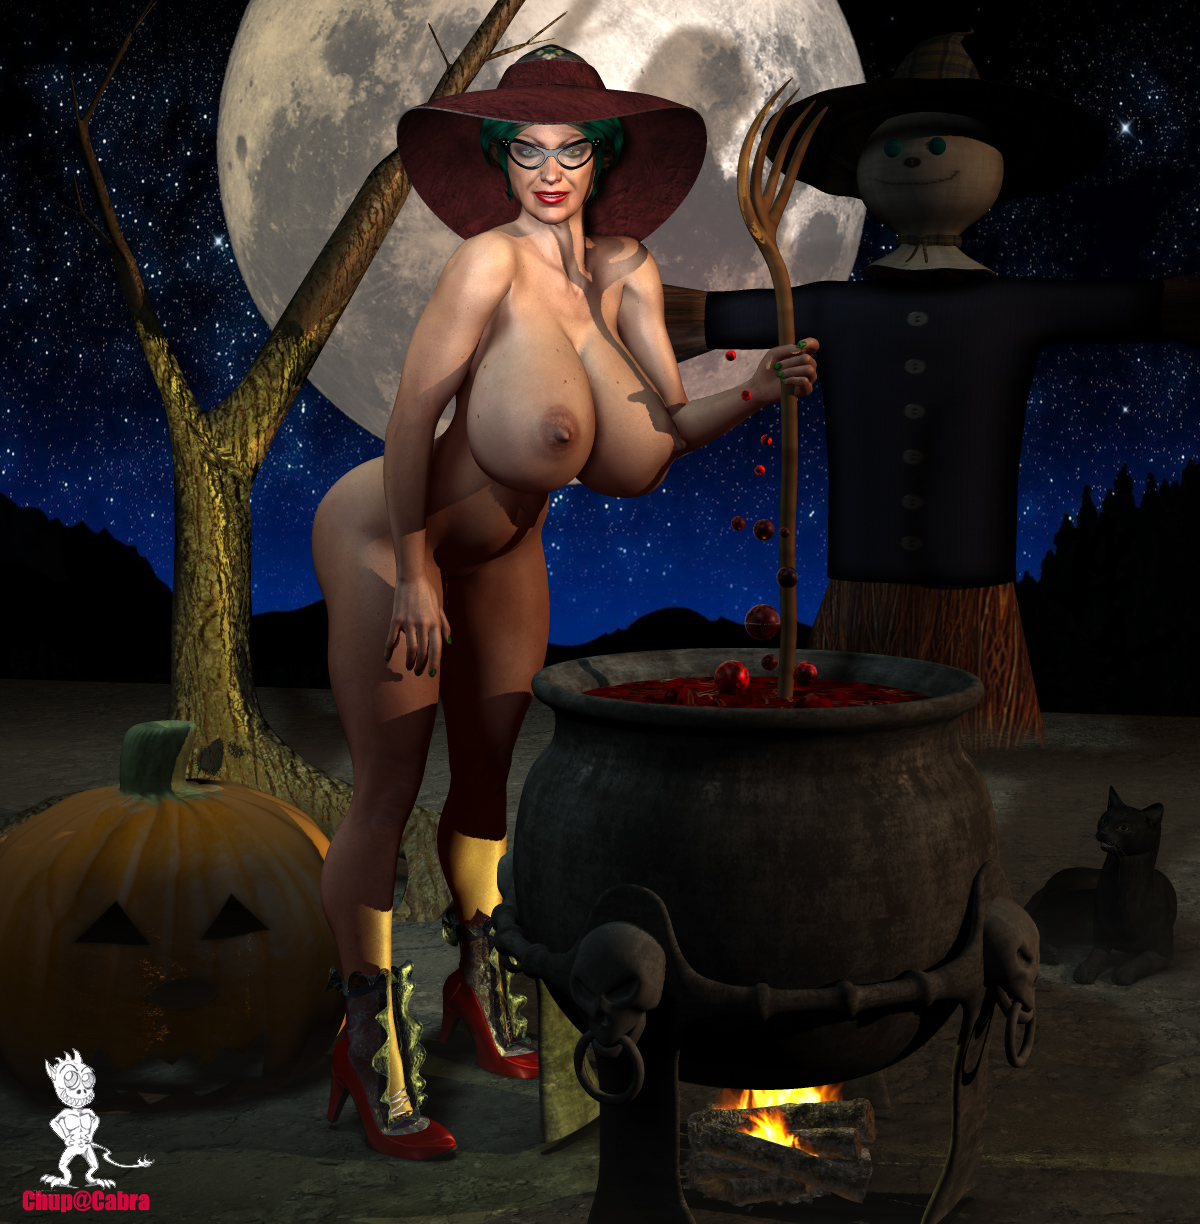 Nude witches pic exposed pics